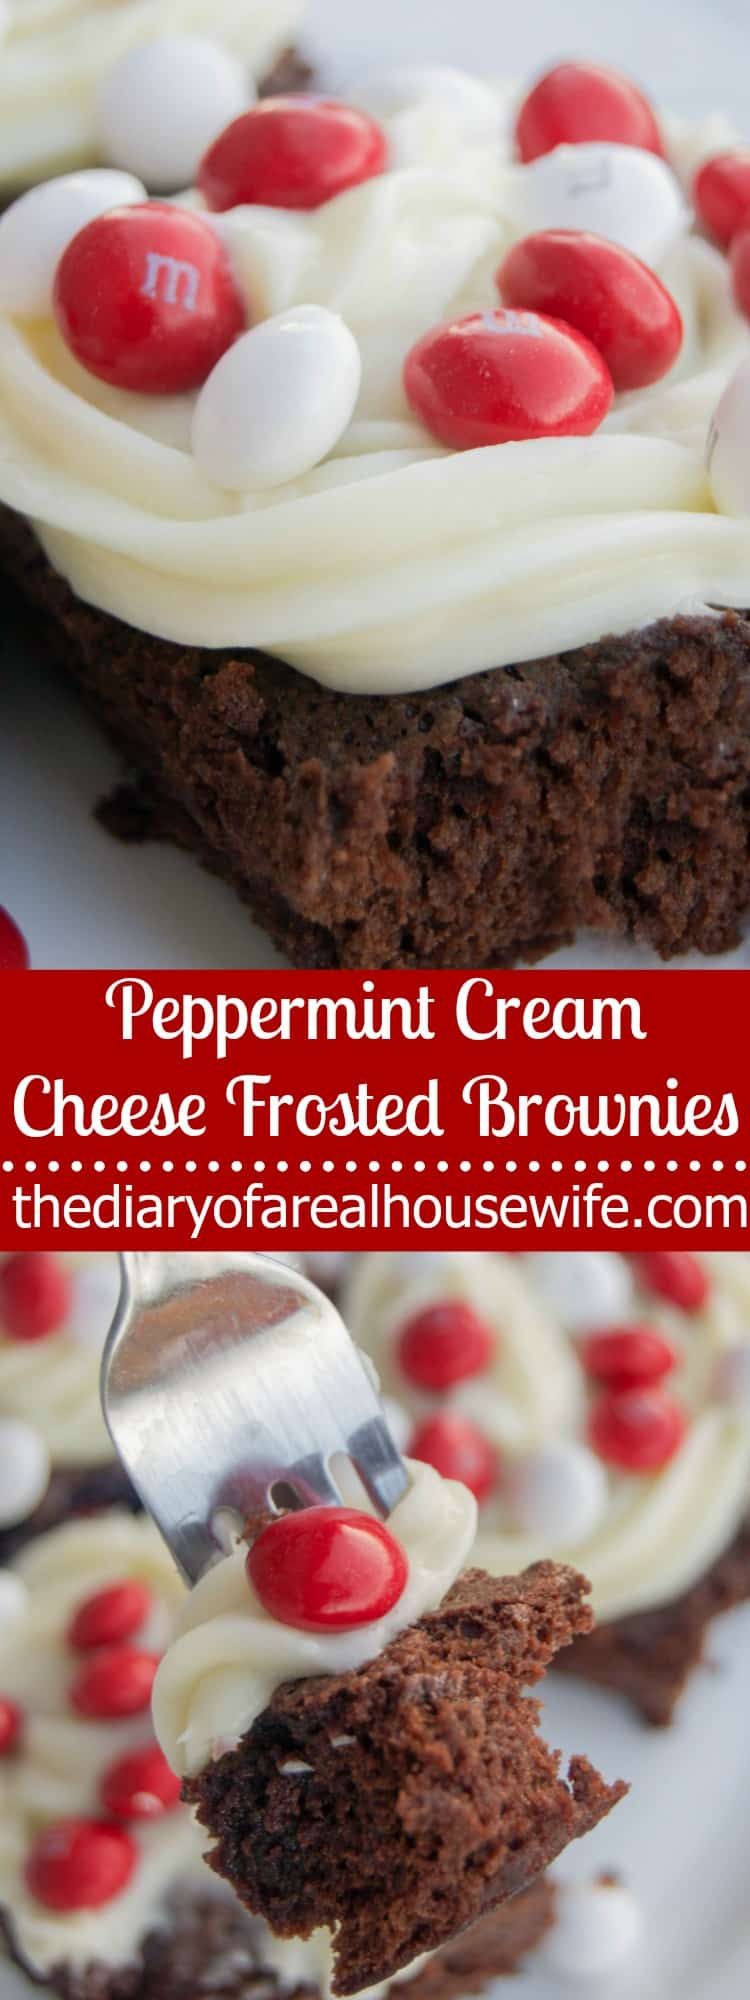 Peppermint Cream Cheese Frosted Brownies